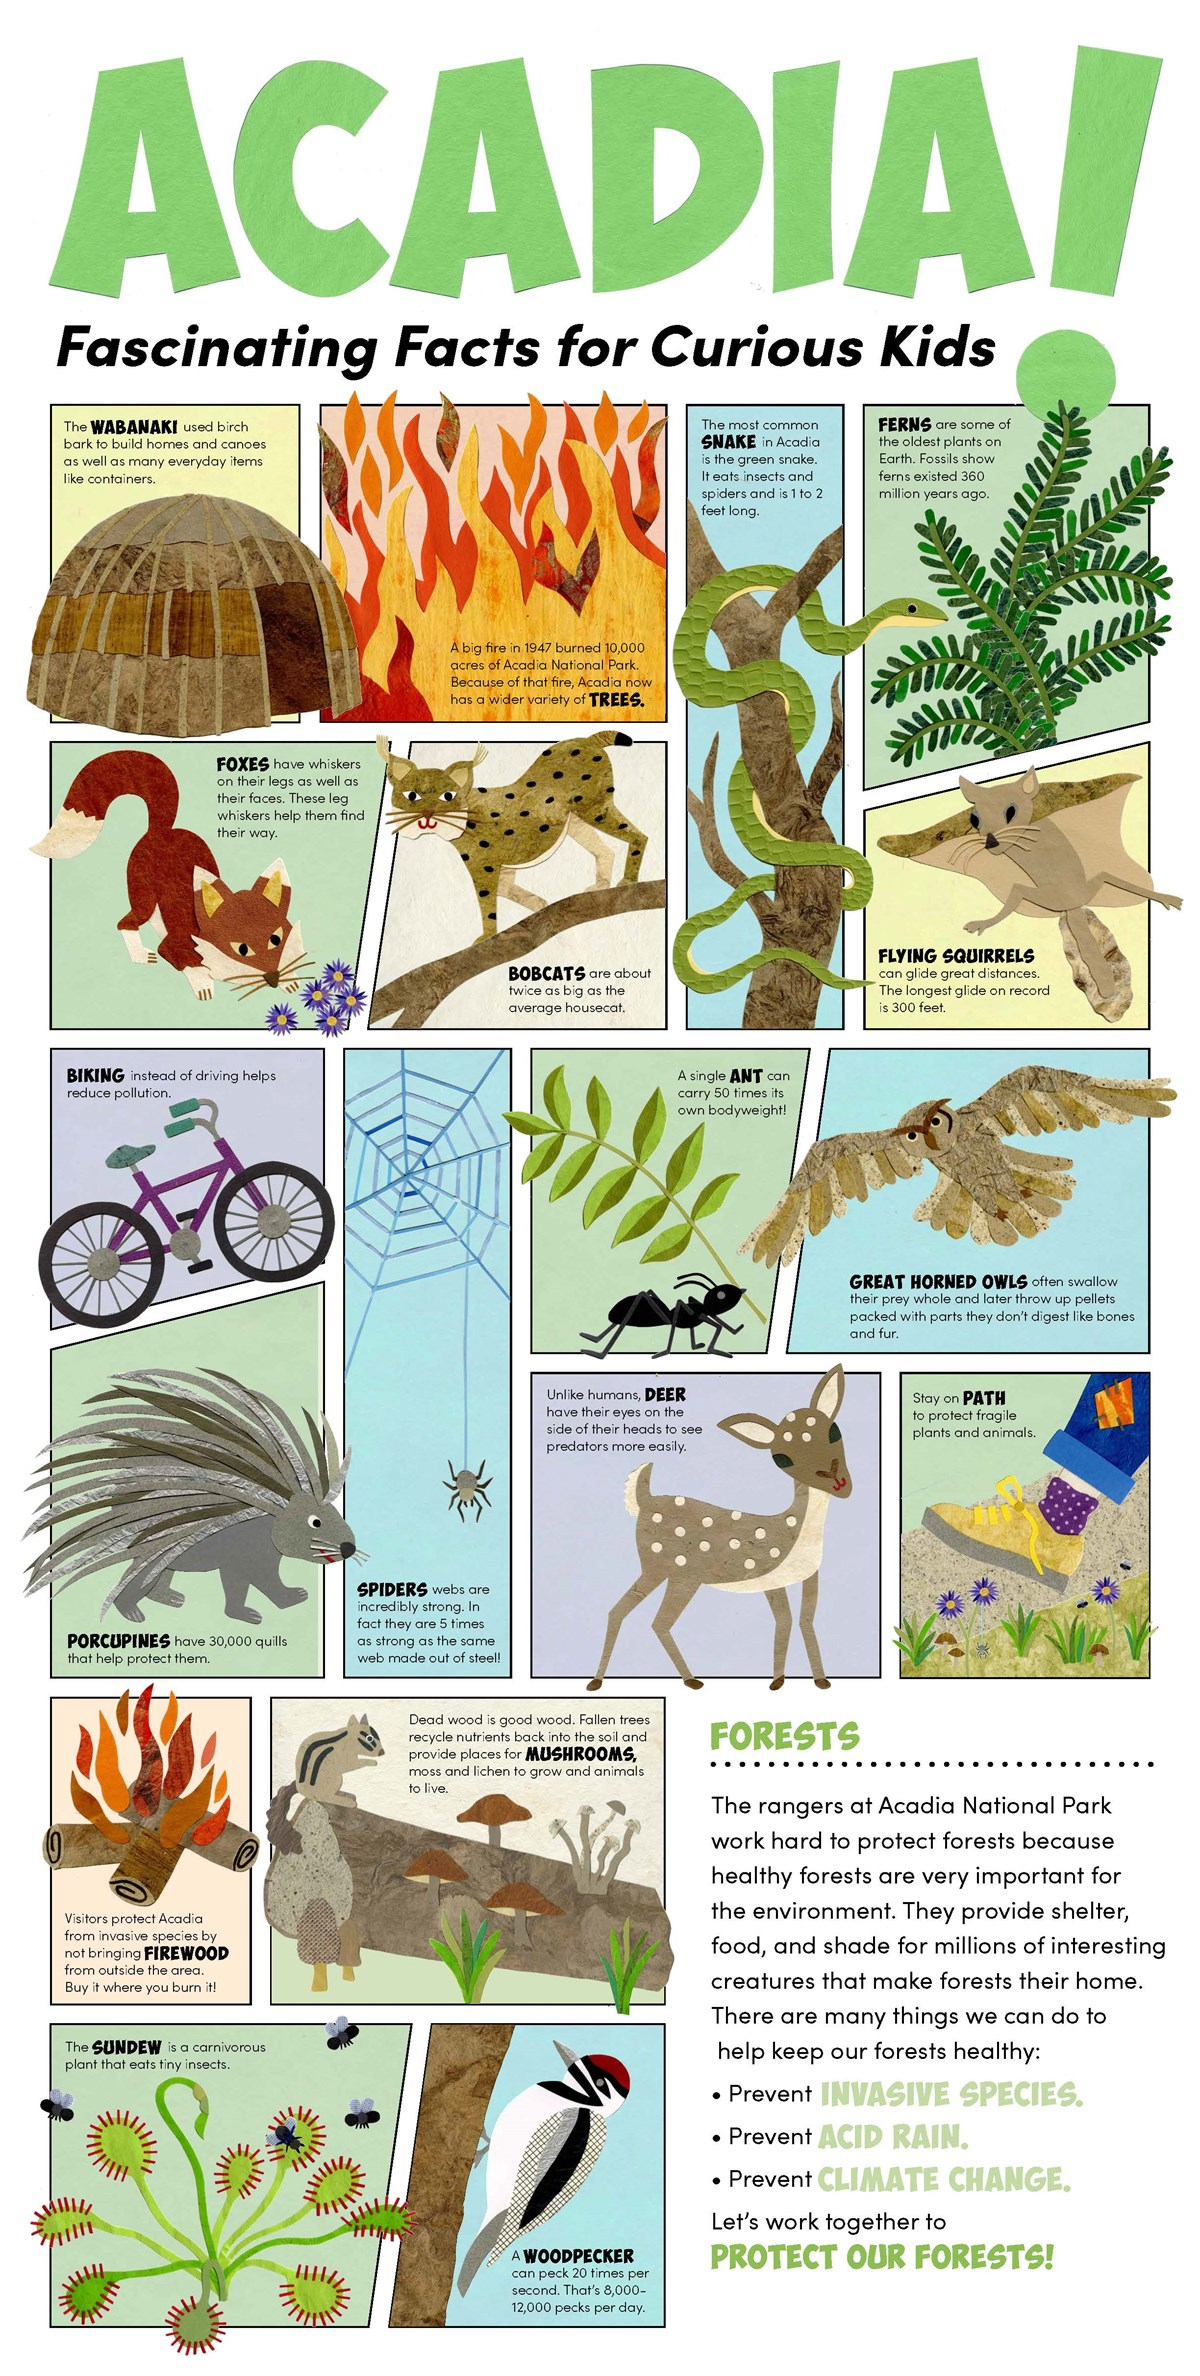 Children's poster with many different graphics and text explaining different fun facts about the cultural and natural resources of Acadia National Park. This poster focuses on forests and the images are made from cut paper.